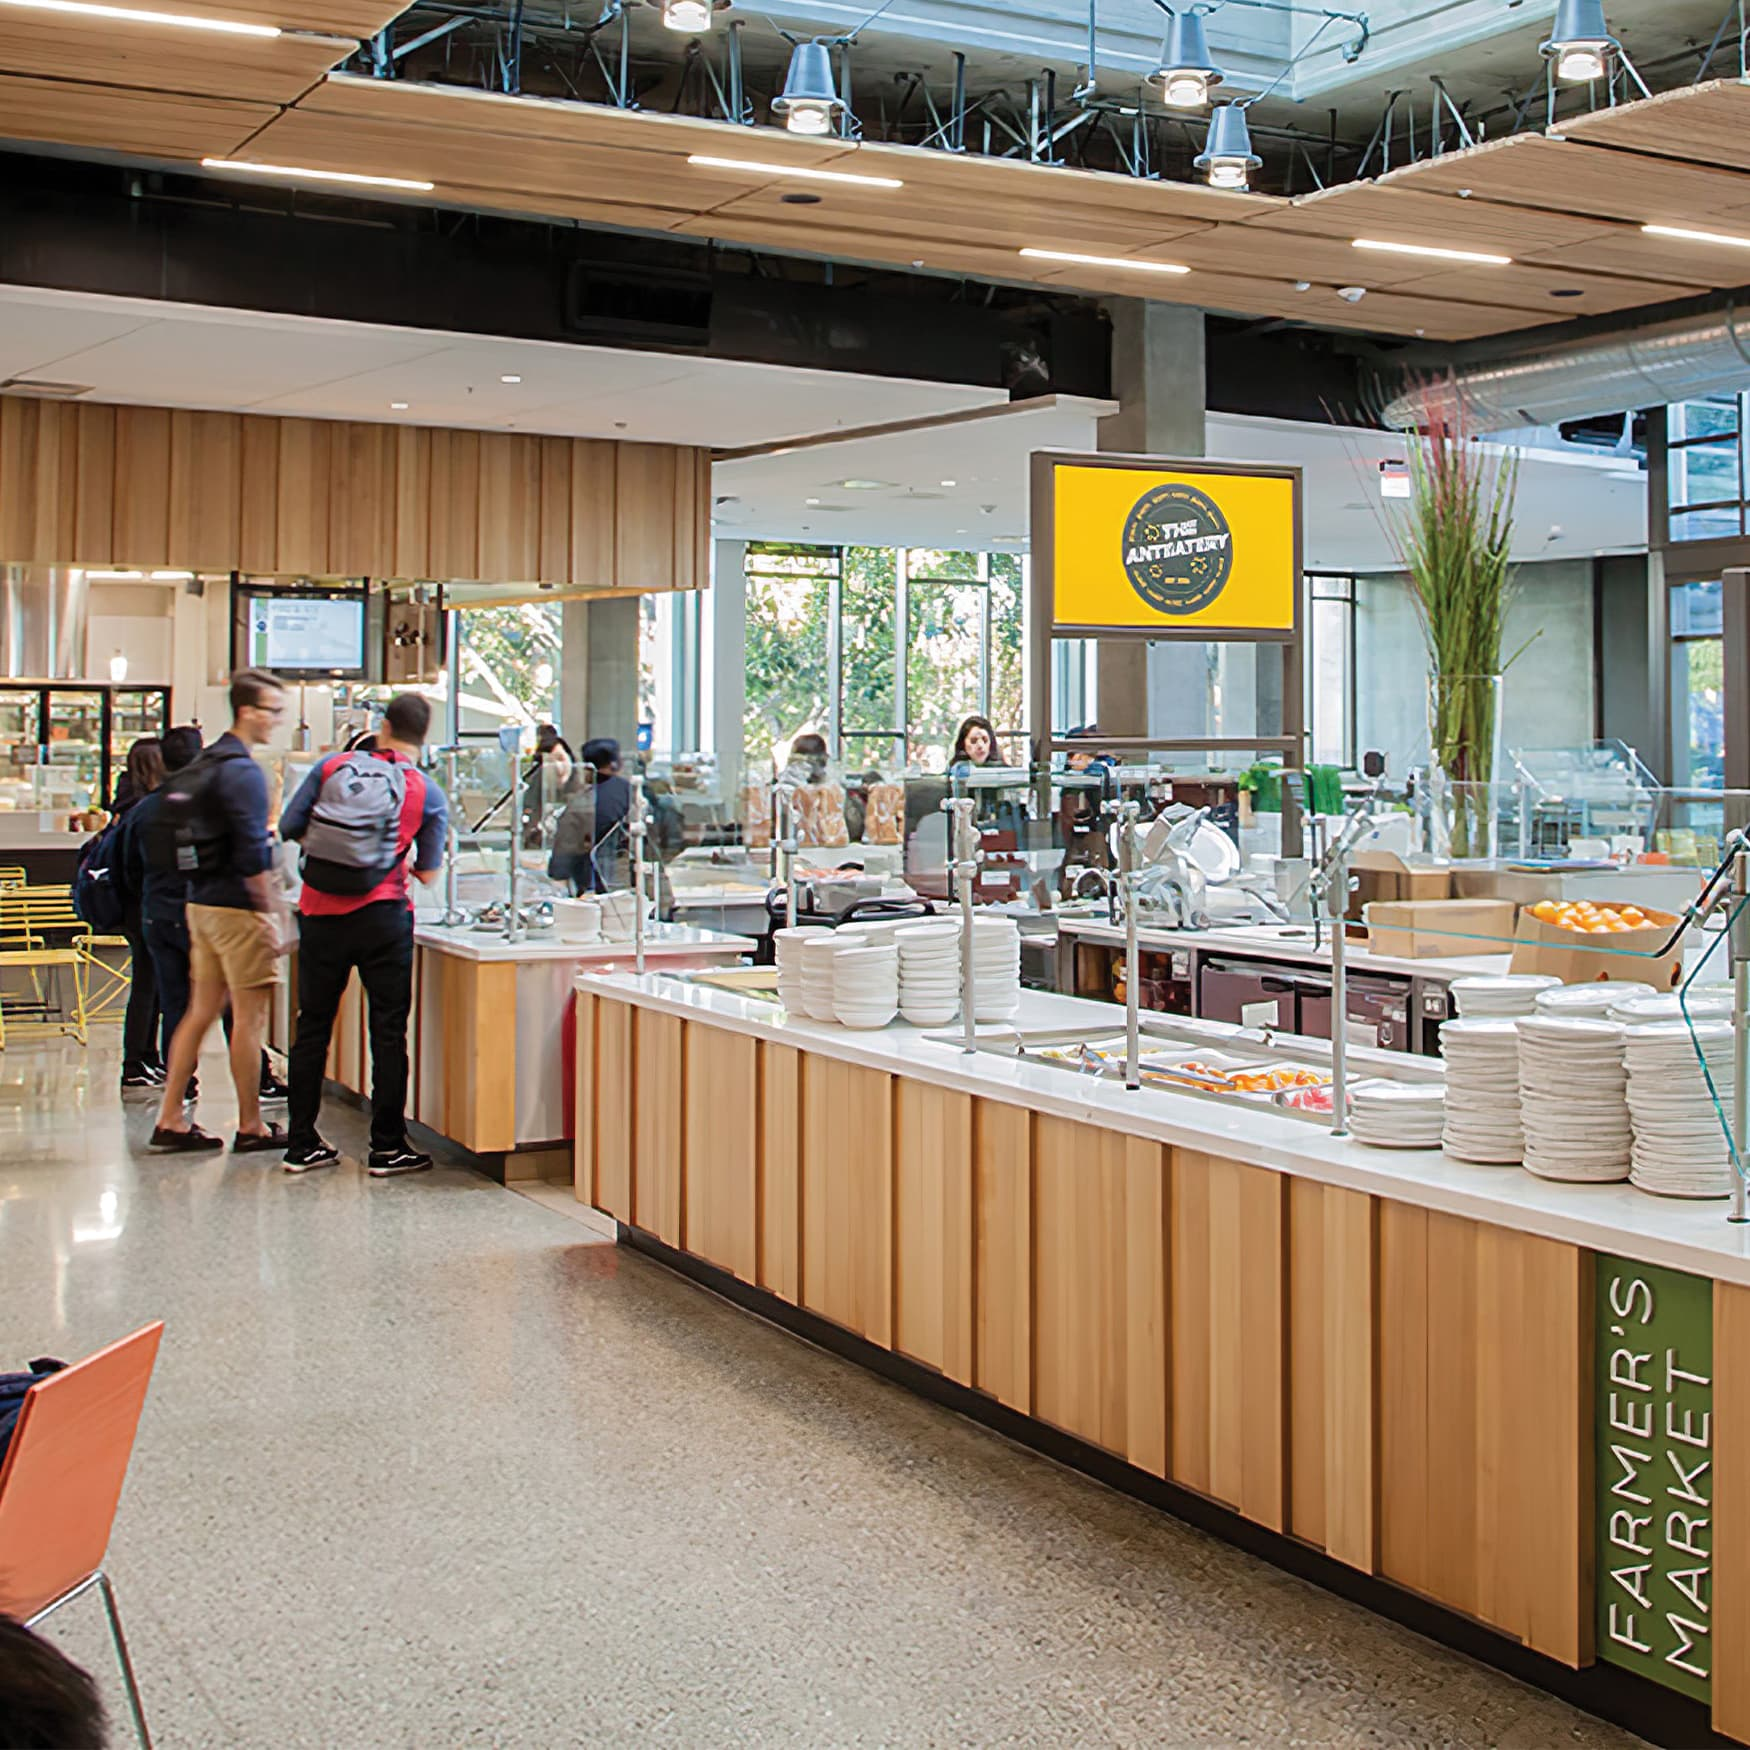 An interior photograph of the Anteatery Foodhall featuring a few signage elements.